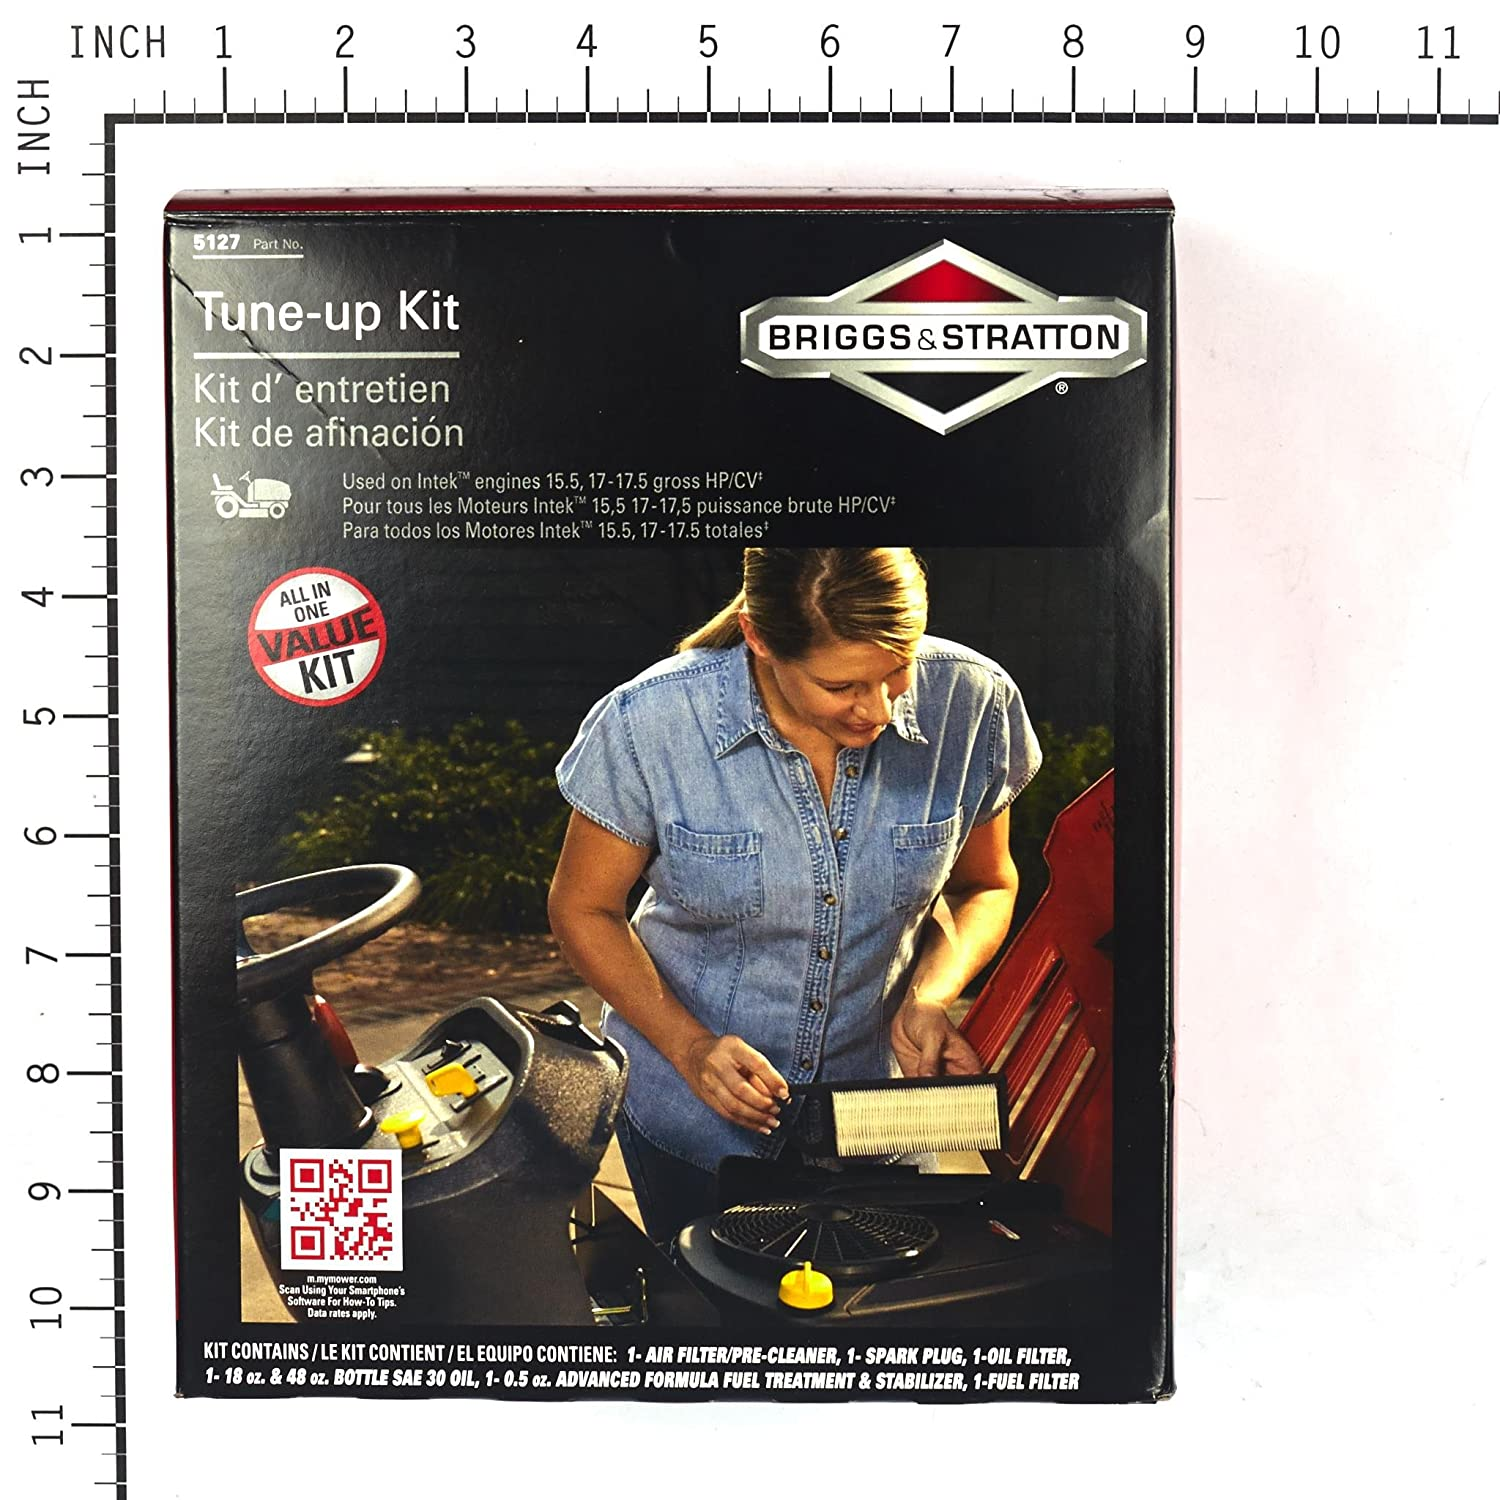 Troy bilt chipper wiring diagram troy free image about wiring - Amazon Com Briggs Stratton 5127b Tune Up Kit Lawn Mower Tune Up Kits Garden Outdoor